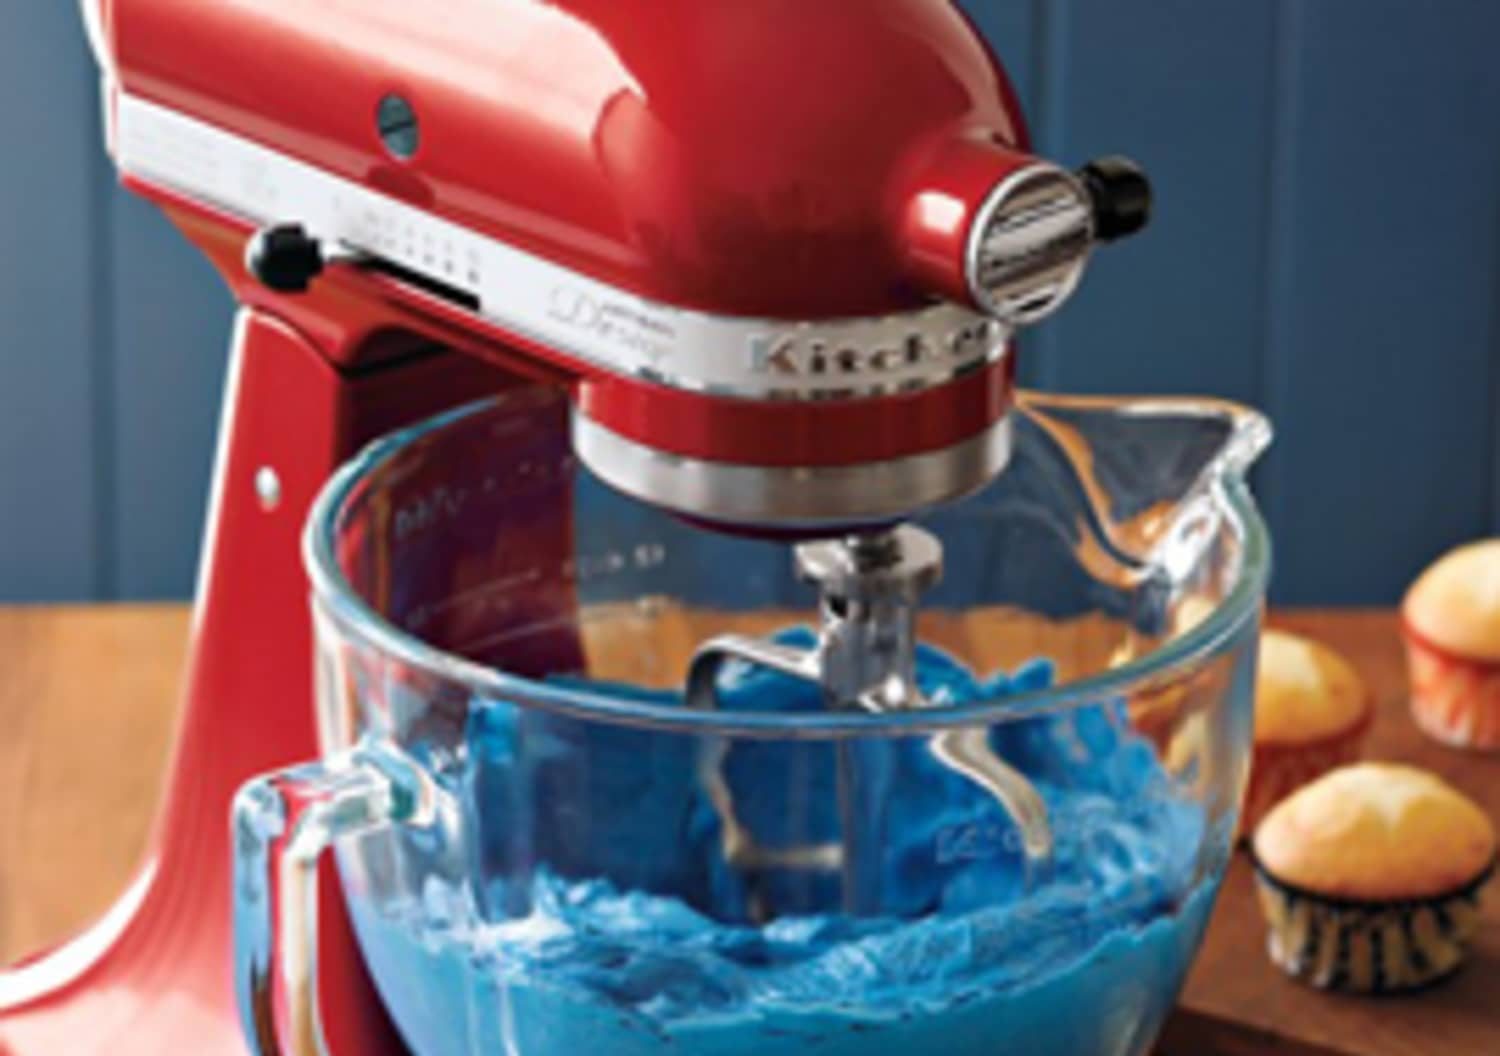 What Kind of Stand Mixer Should I Buy? | Kitchn